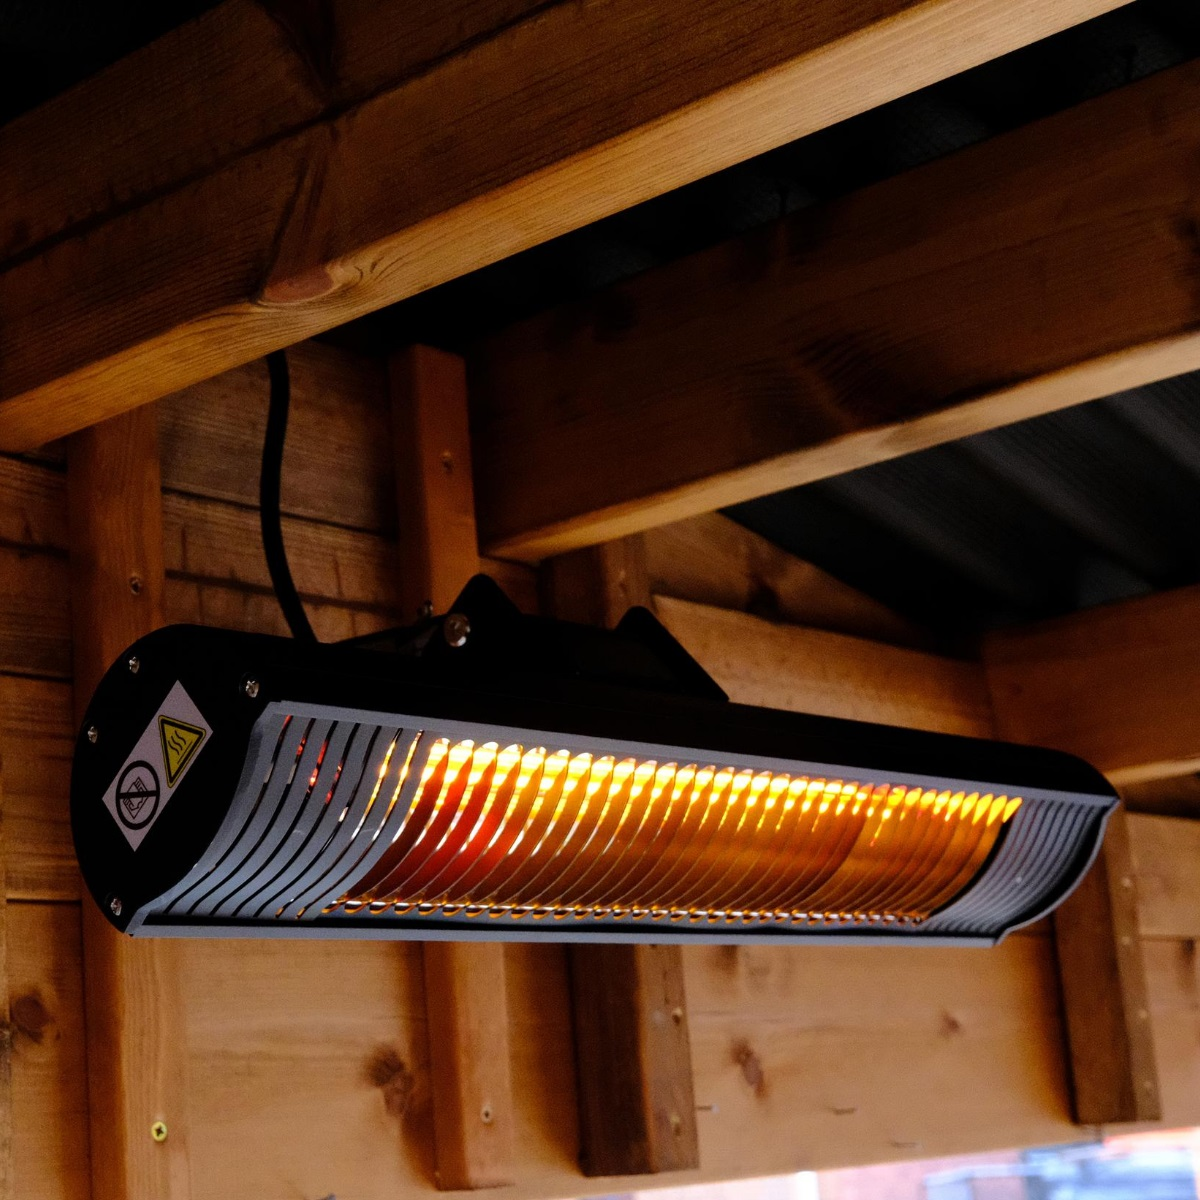 A long rectangular black electric heater mounted on the inside of a wooden outdoor gazebo